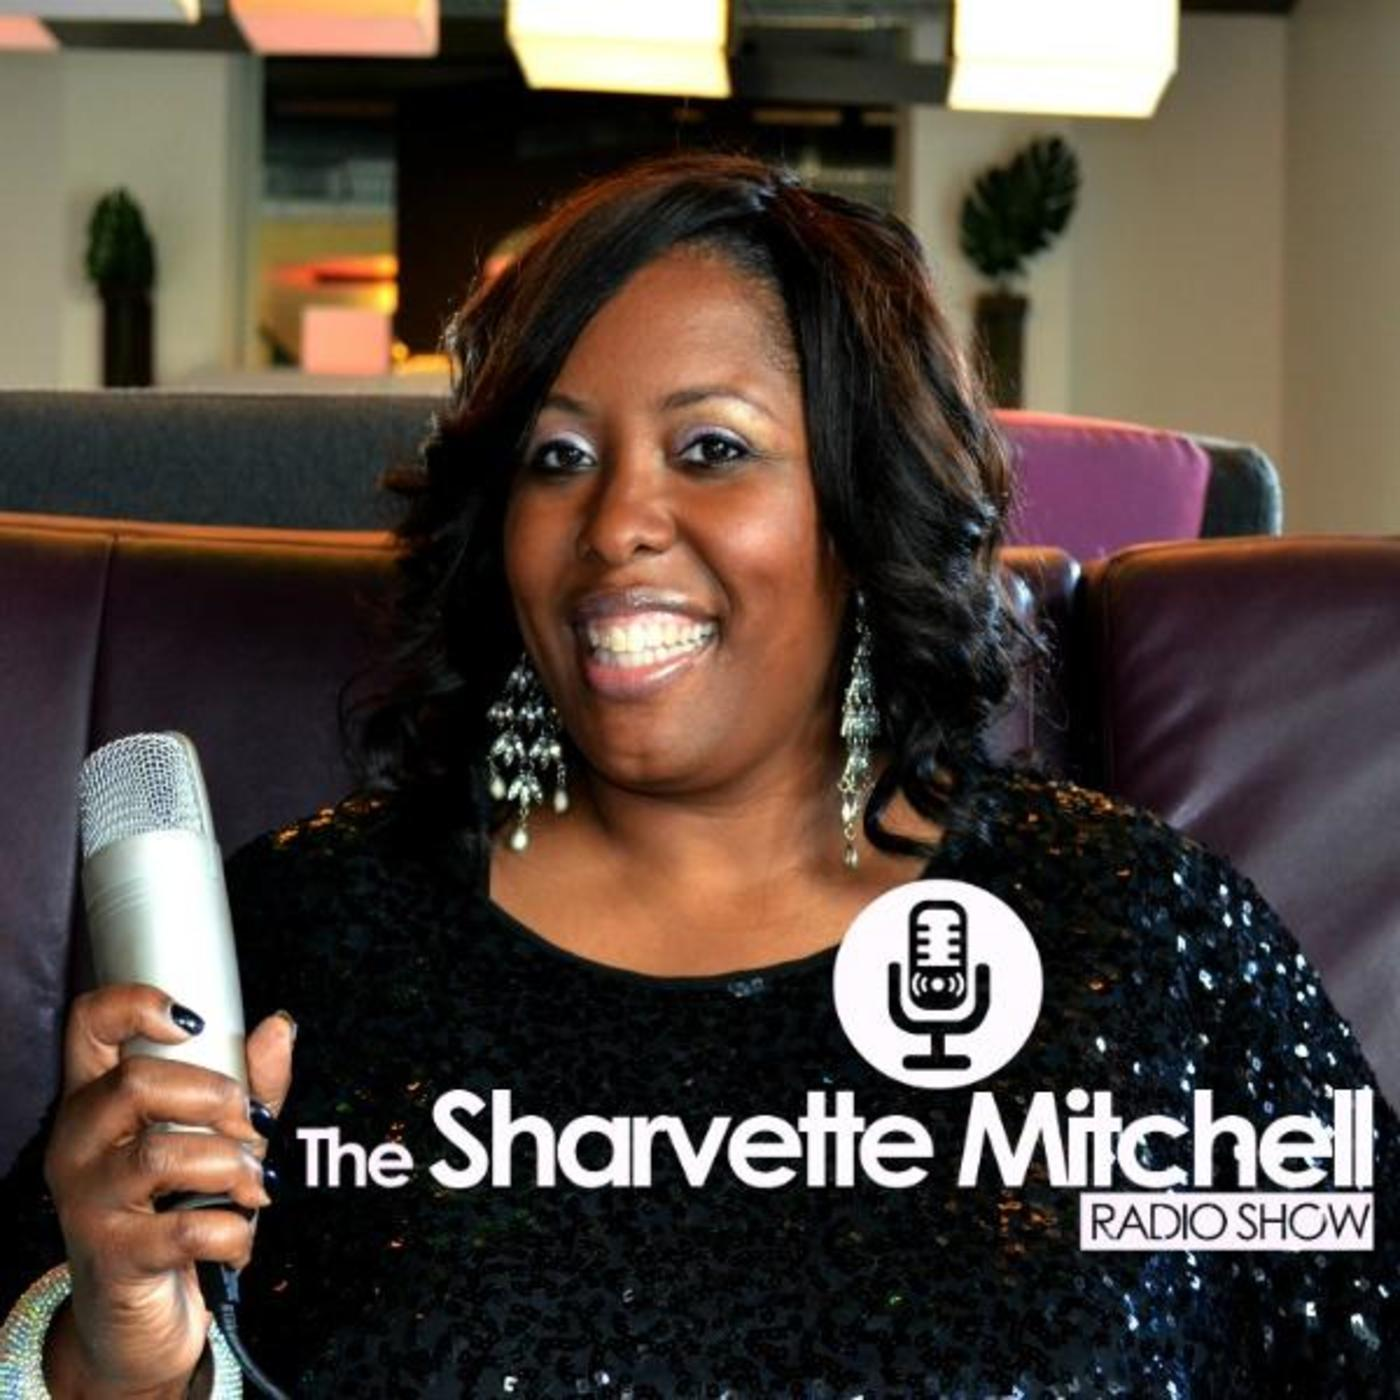 The Sharvette Mitchell Radio Show